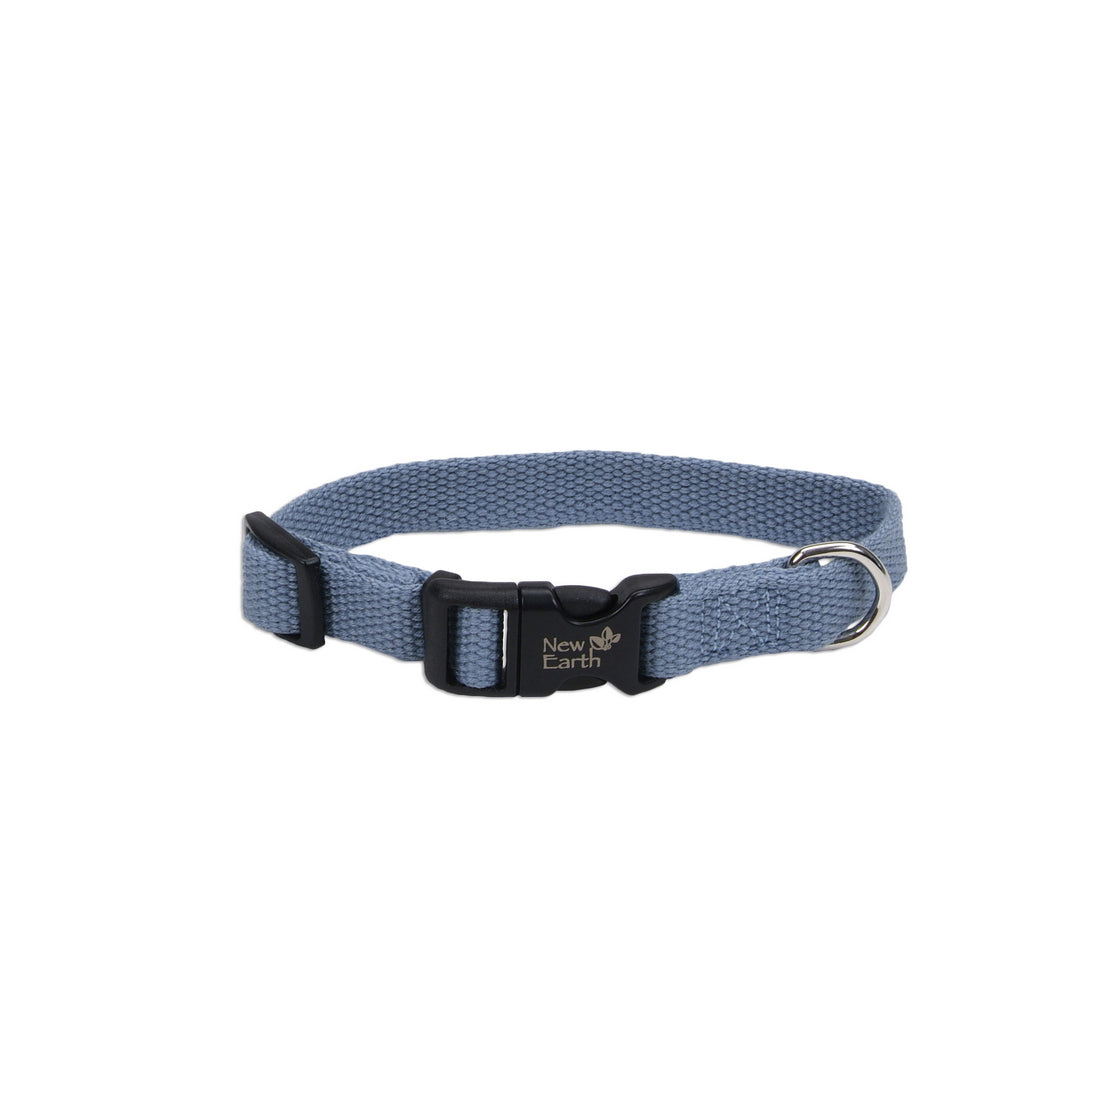 "Coastal Soy Adjustable Collar 18-26"" - 1"" Slate"